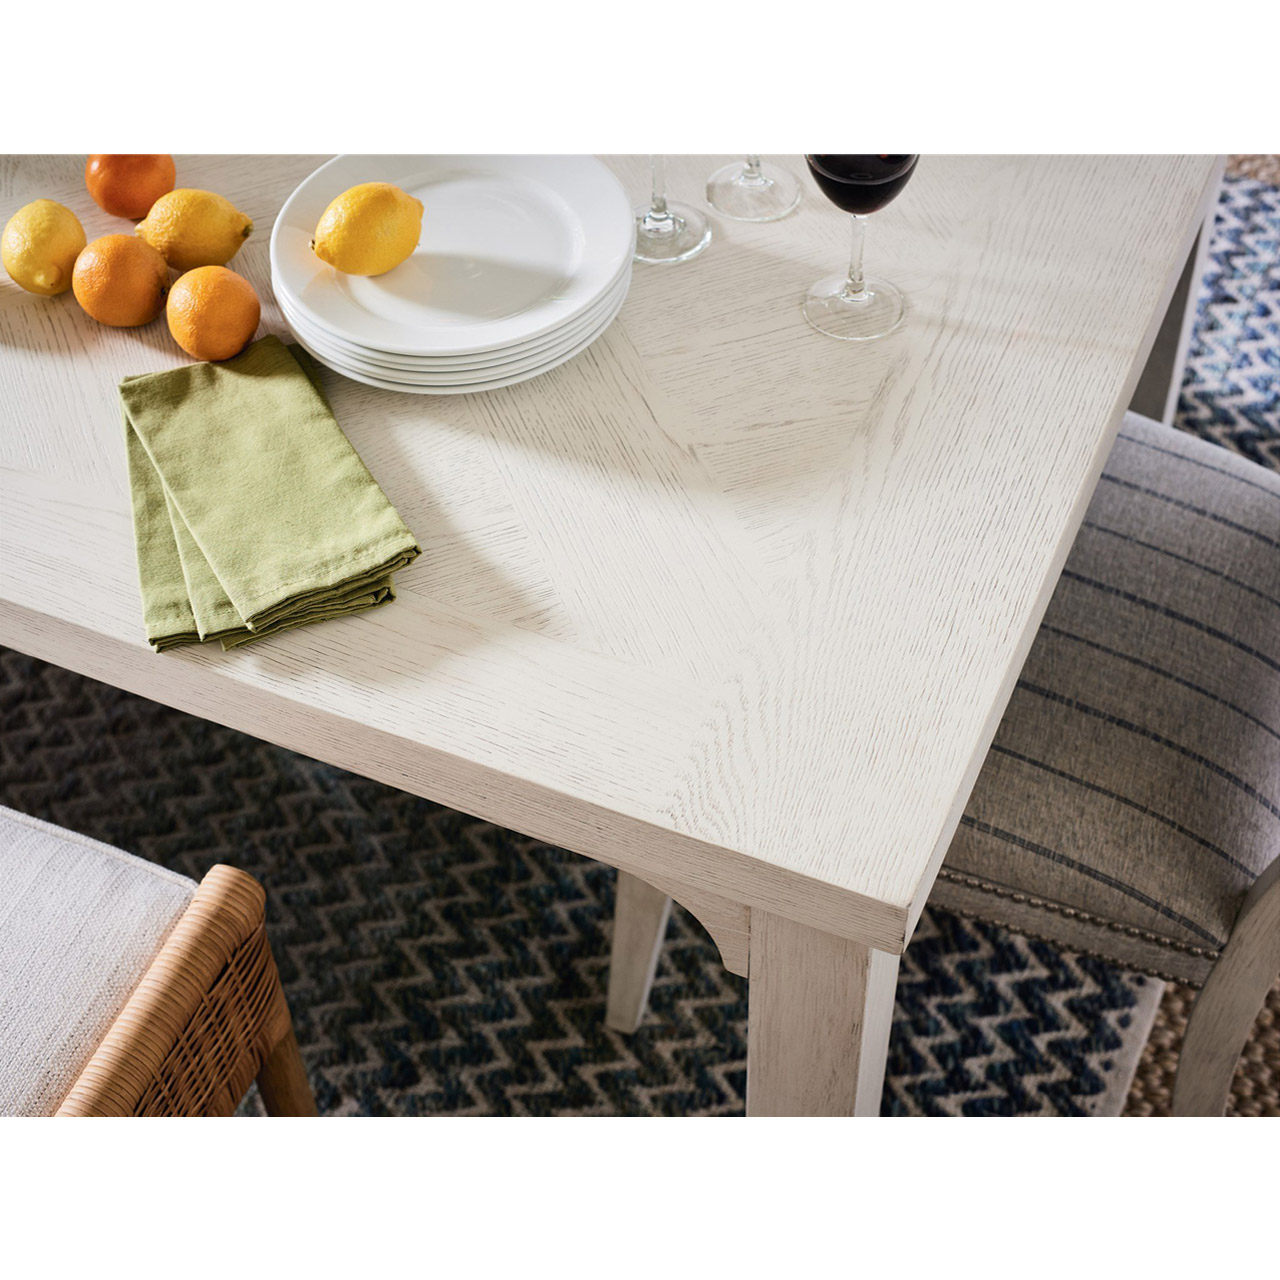 Estella Coastal Beach White Wood Dining Table - Extendable